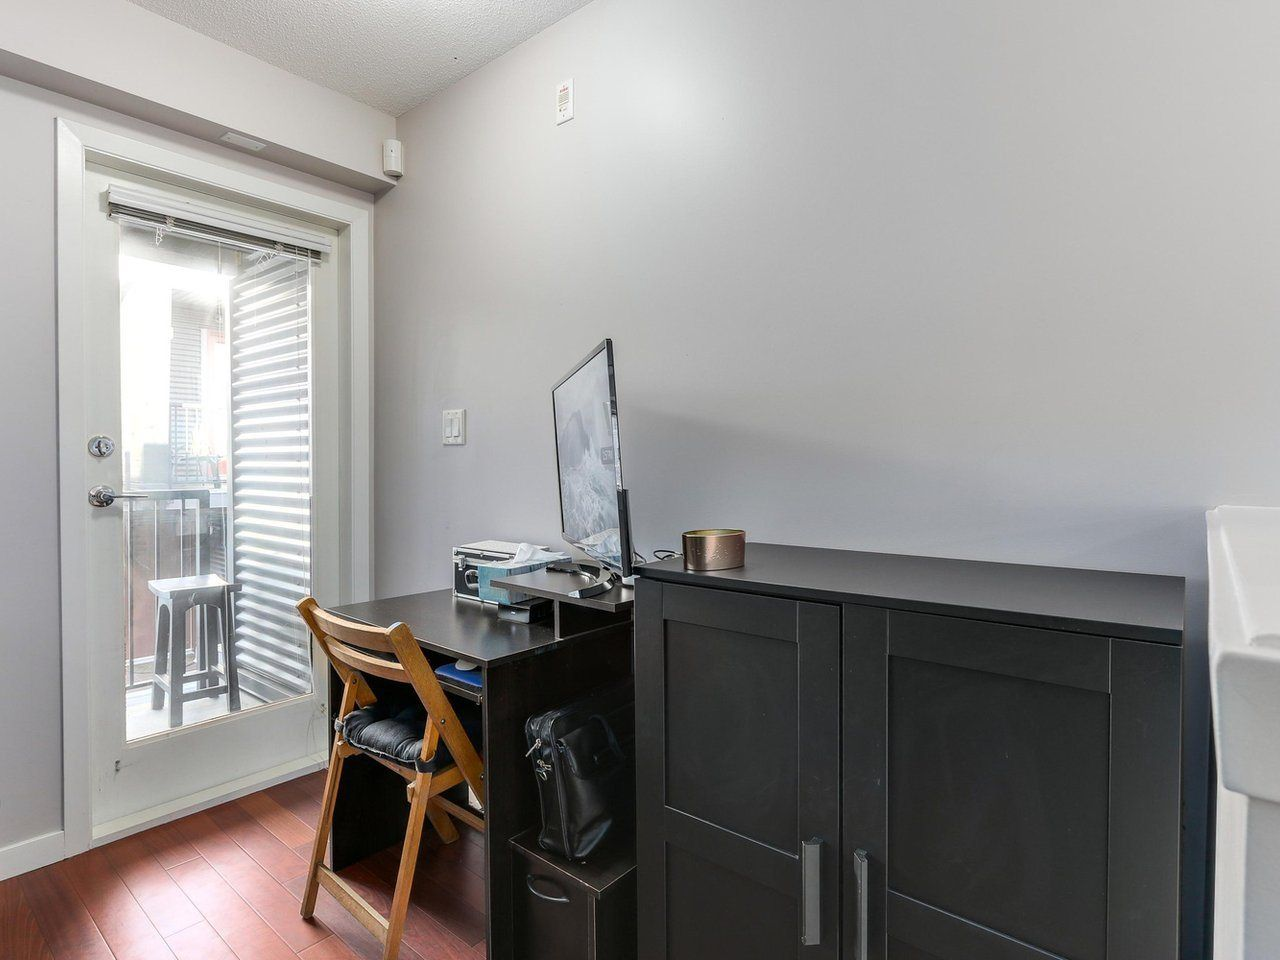 Photo 11: Photos: 119 672 W 6TH AVENUE in Vancouver: Fairview VW Townhouse for sale (Vancouver West)  : MLS®# R2401186